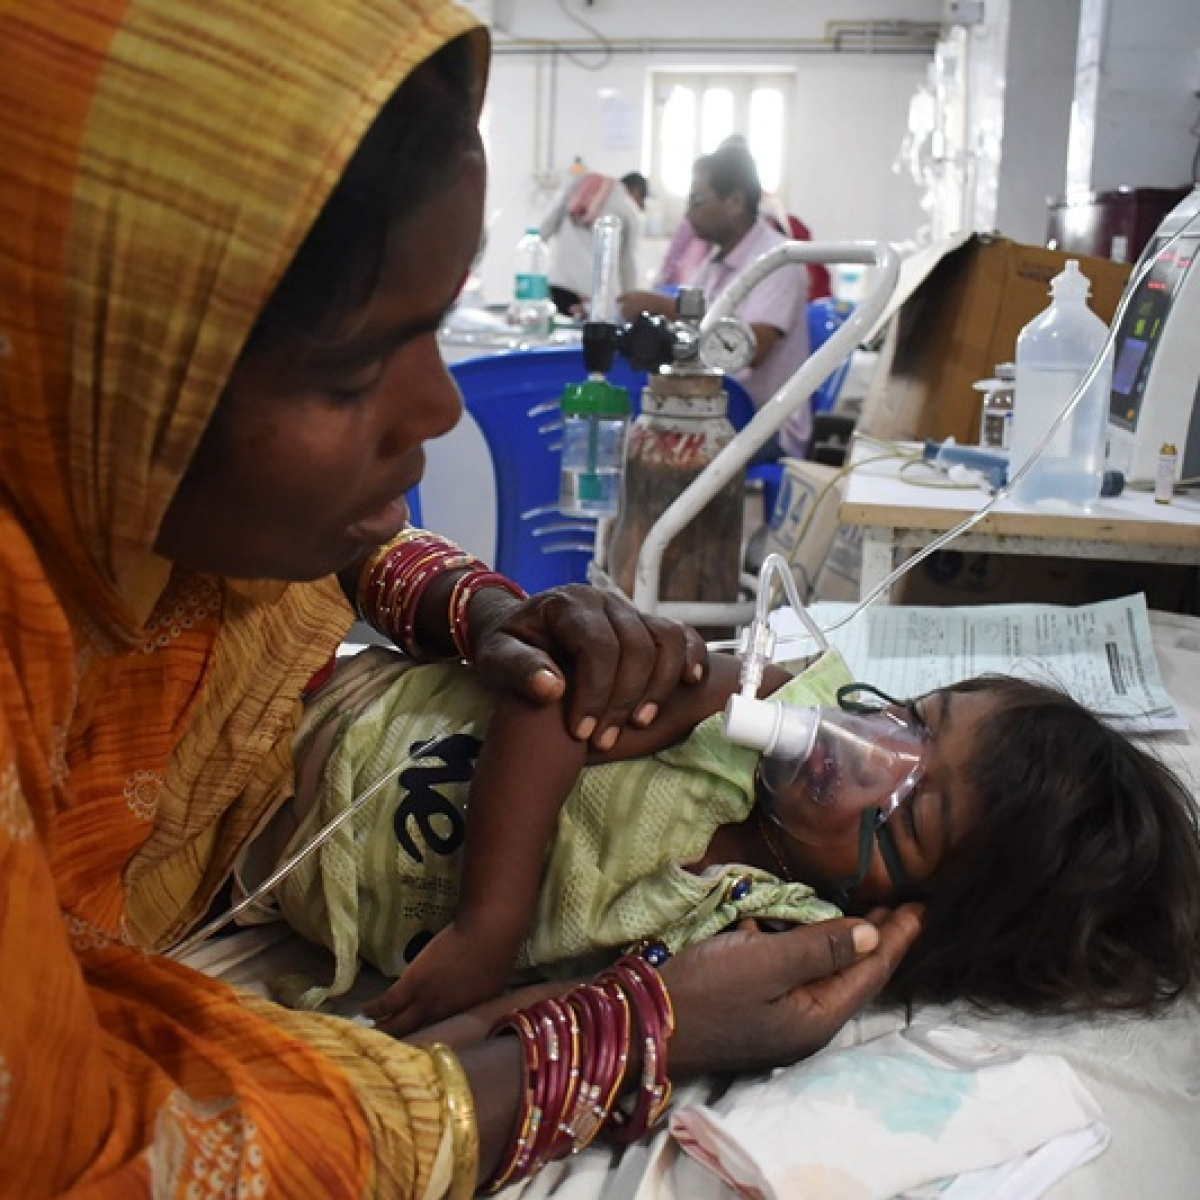 Encephalitis claims 136 lives in Bihar, spreads across 16 districts